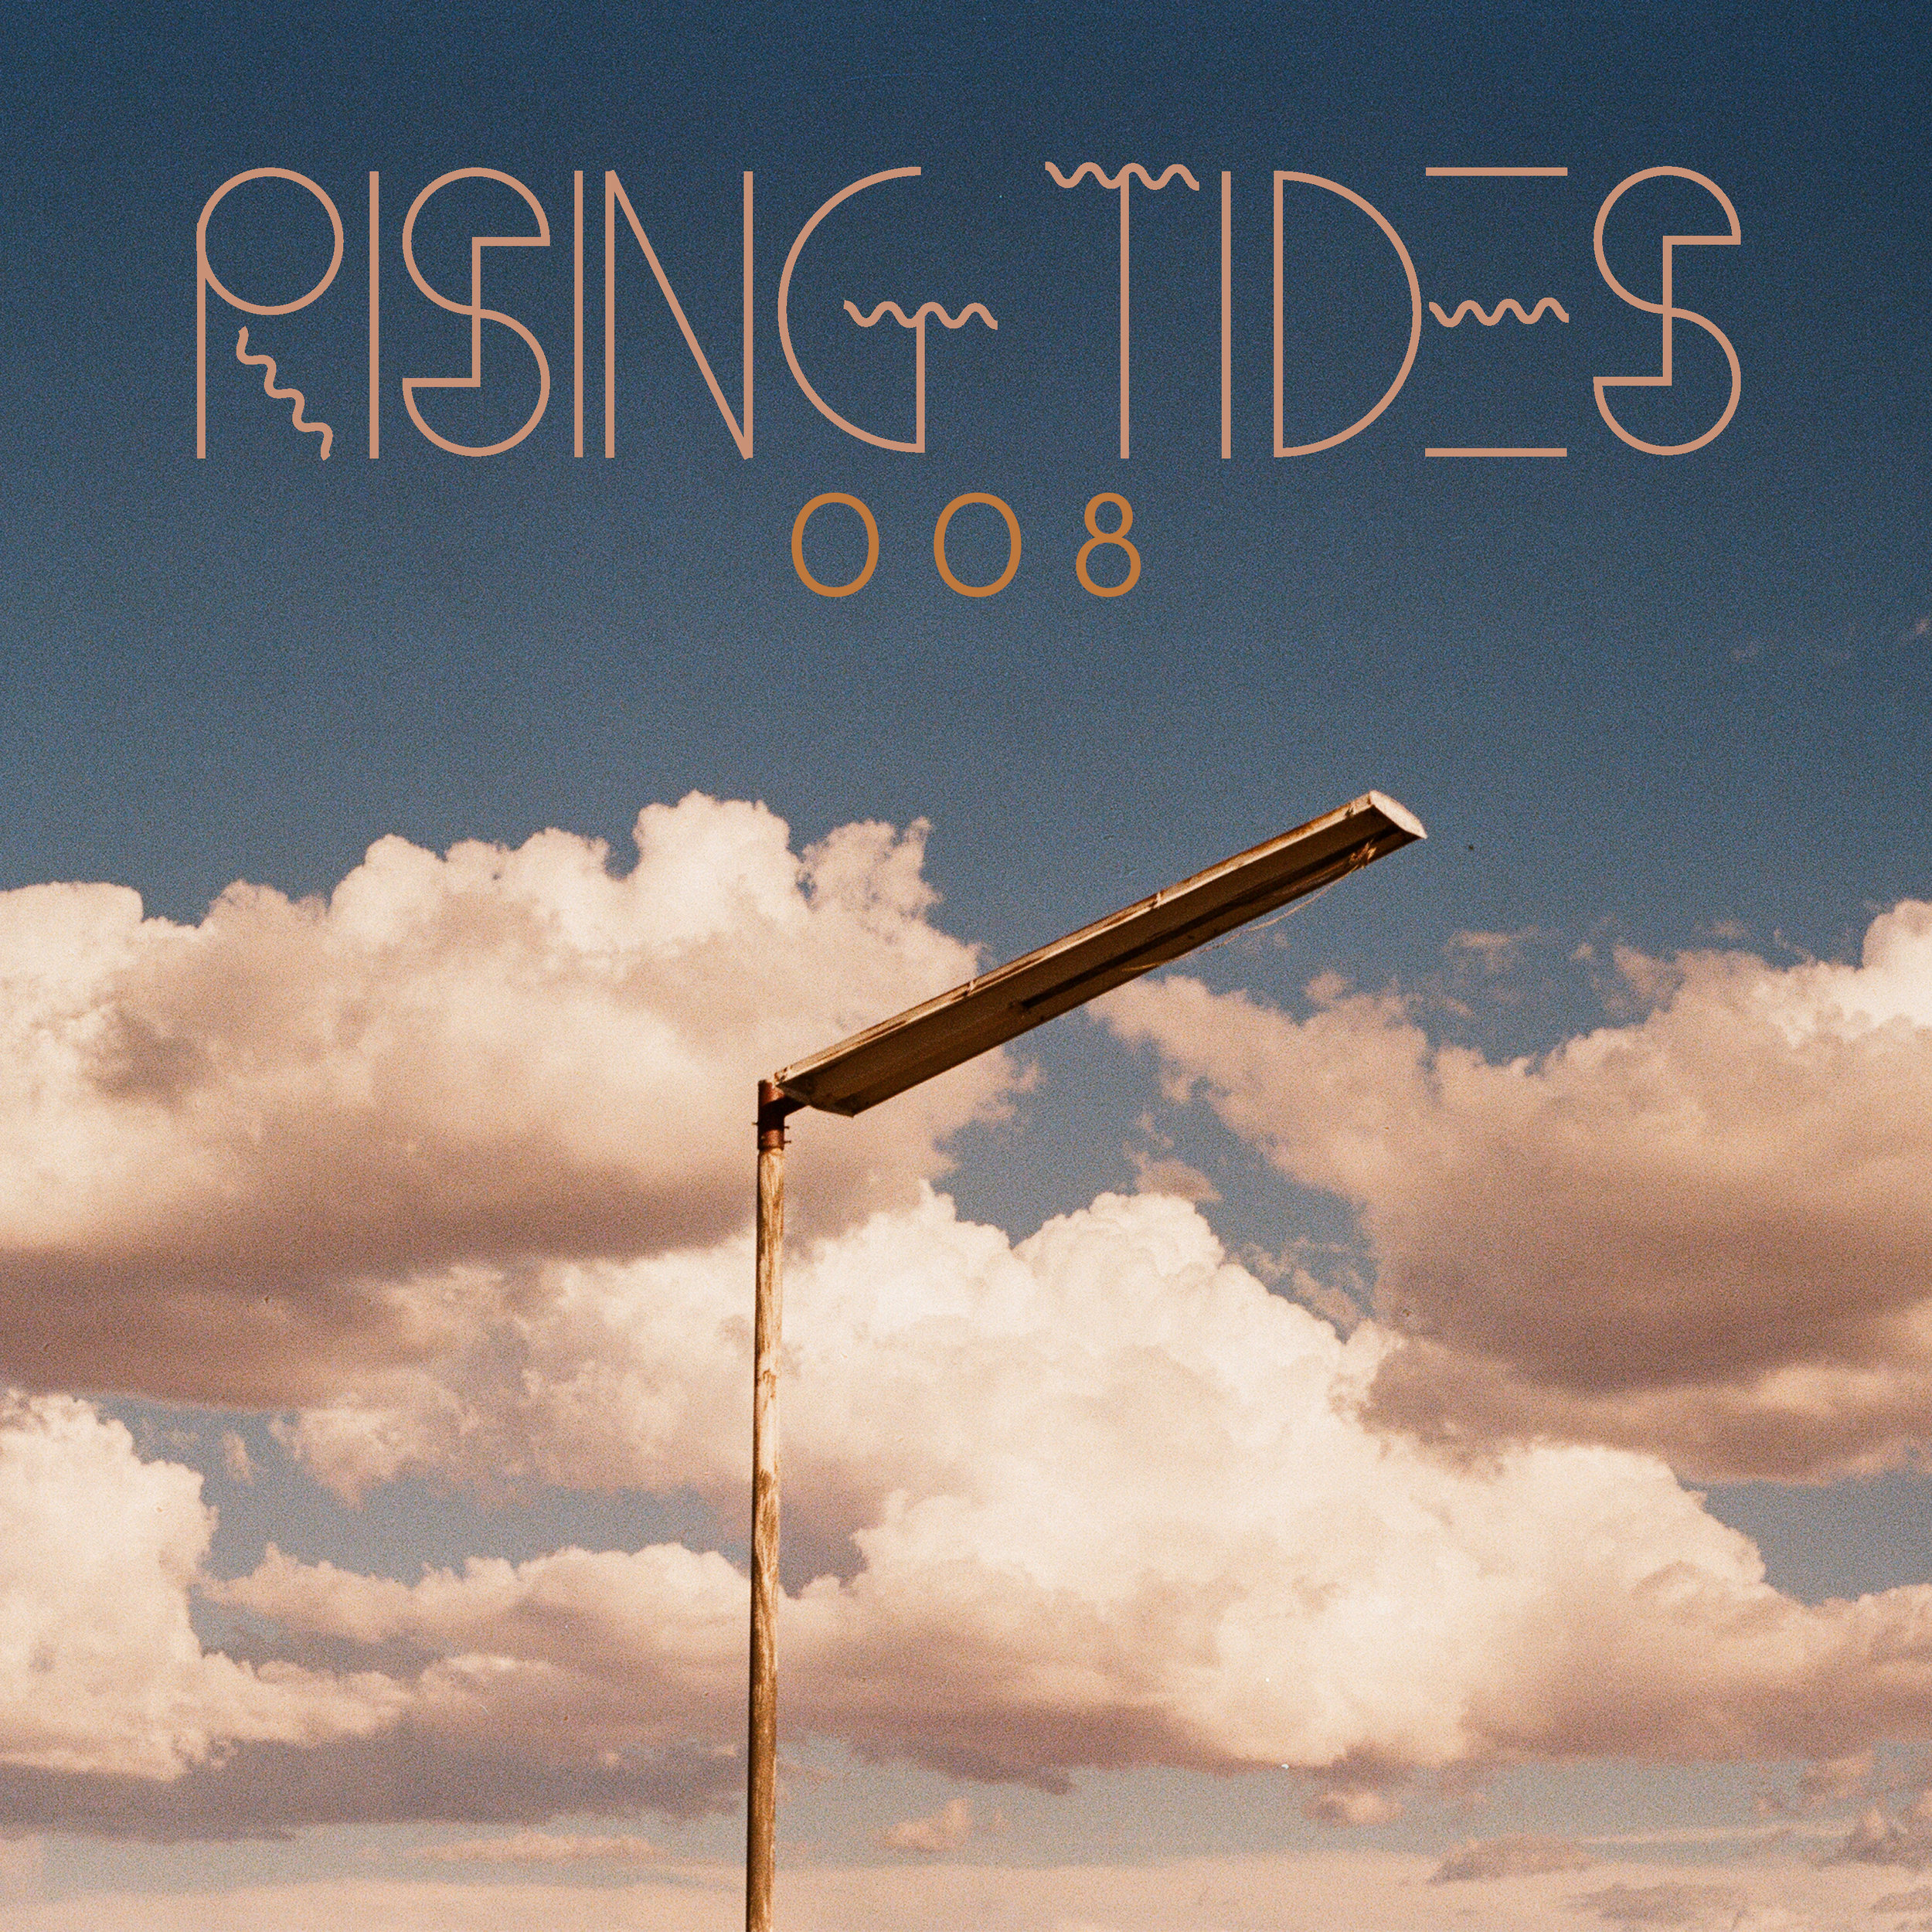 RISING TIDES 008  /  Compilation  / August 30, 2017